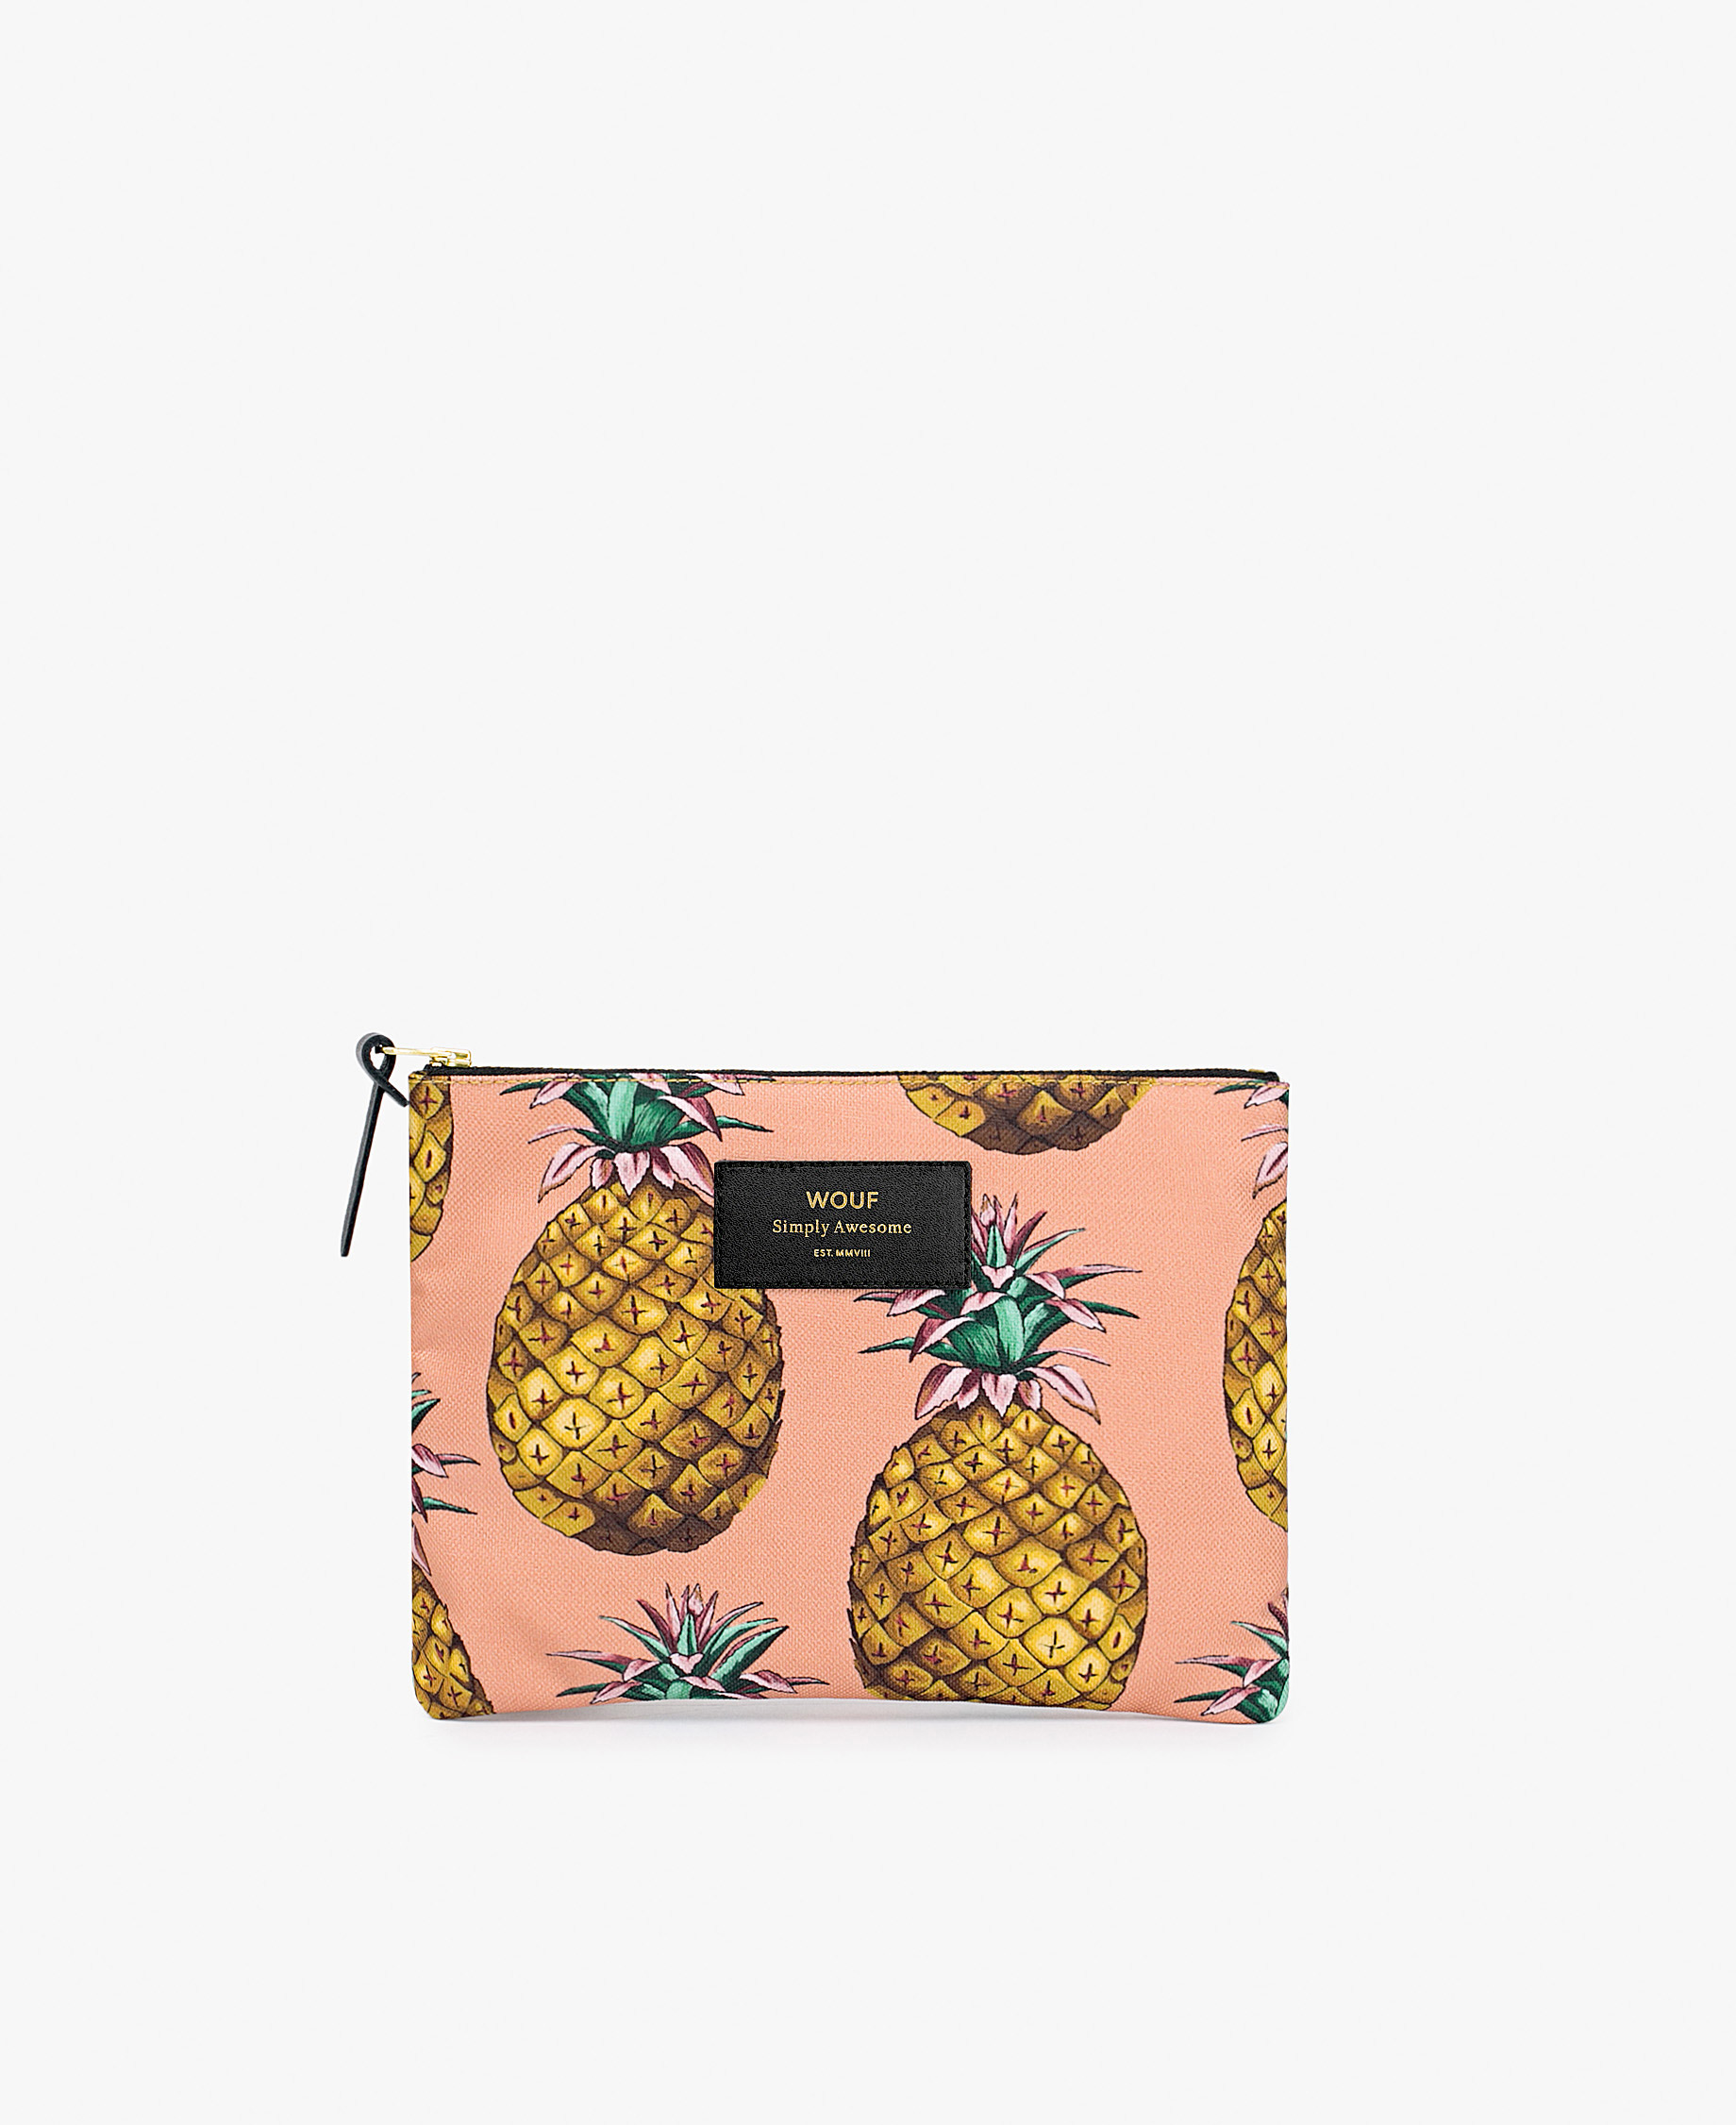 fashionable pouch